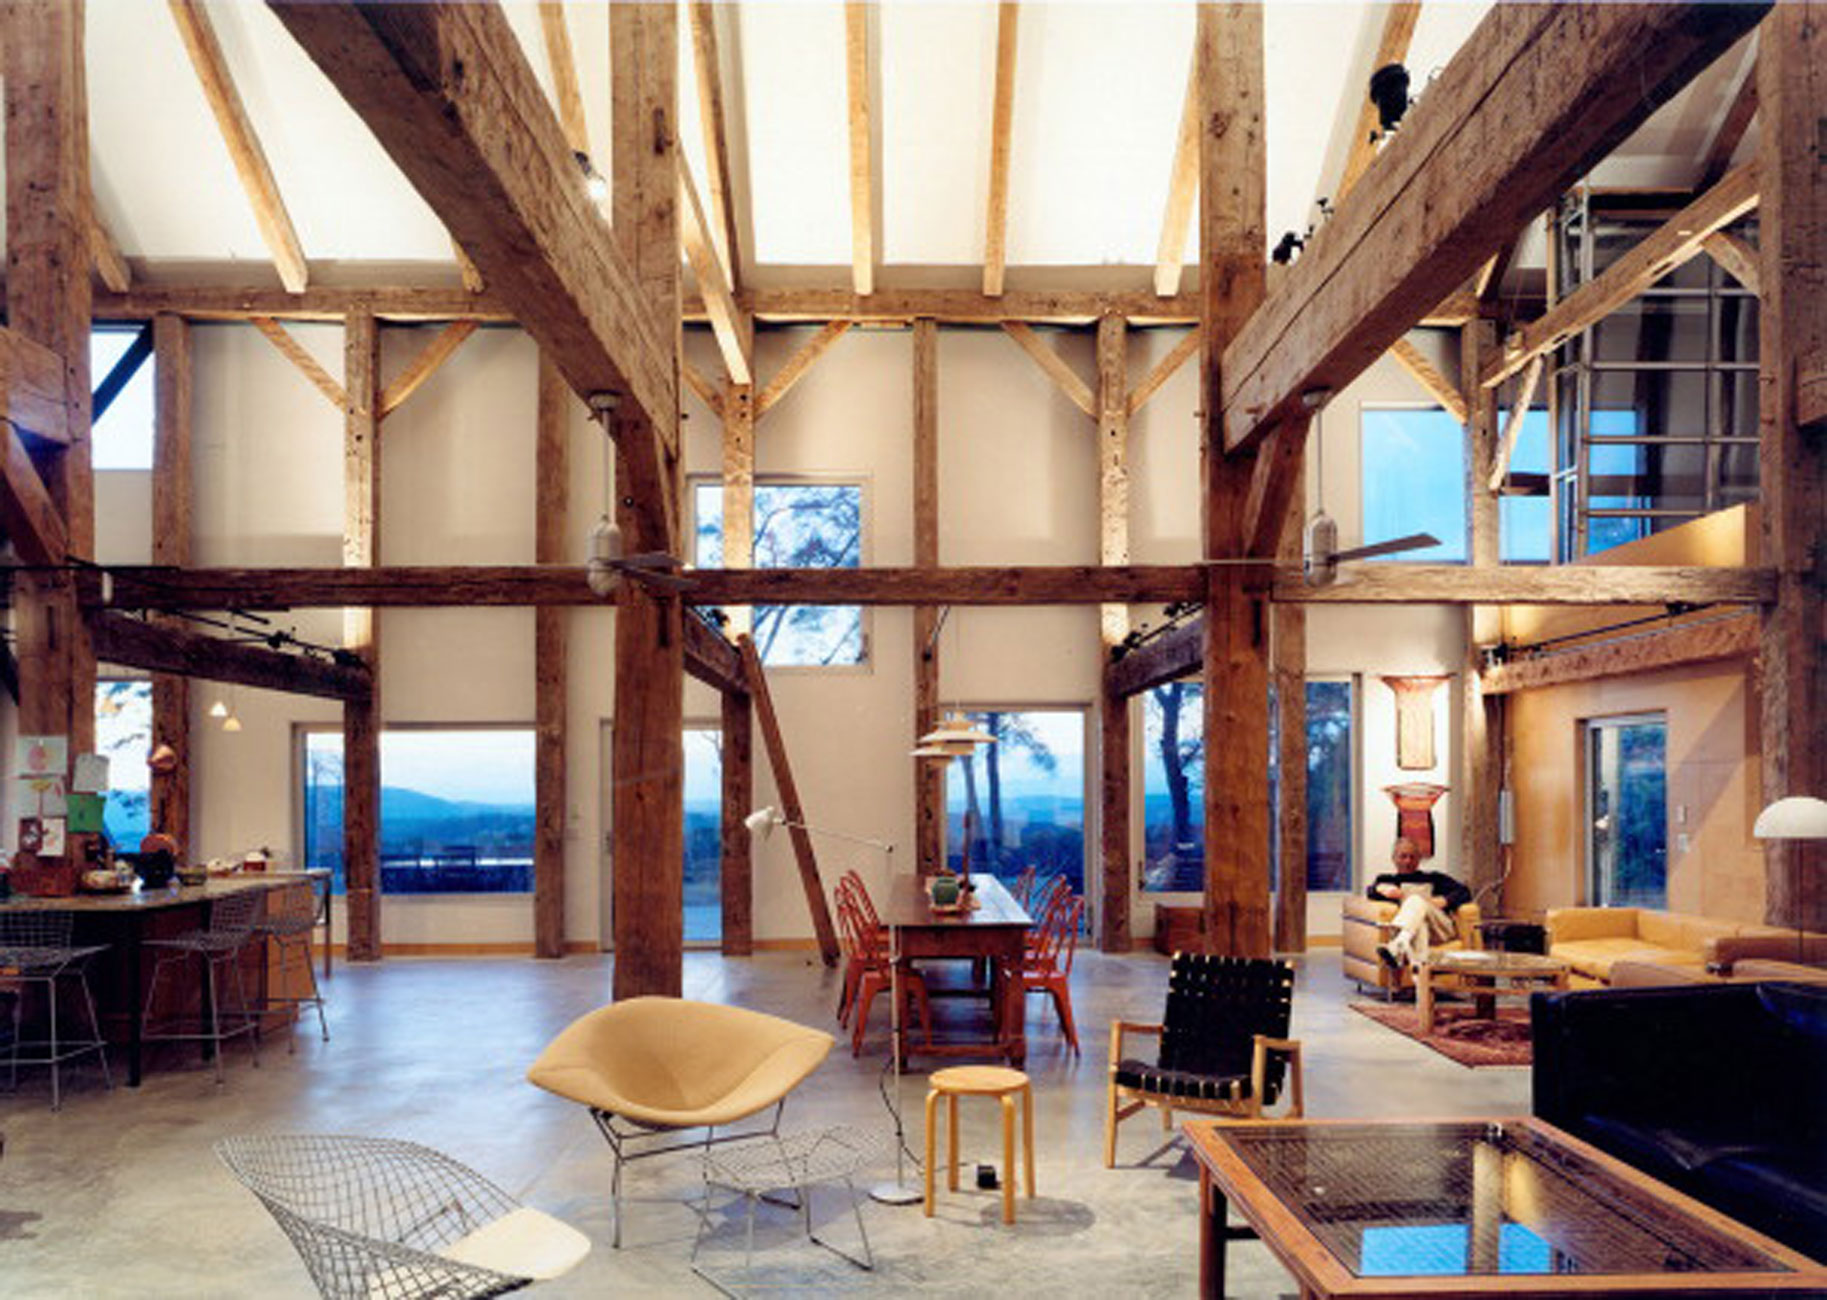 Goodman House, Unique Barn House Design from Preston Scott Cohen - Interior